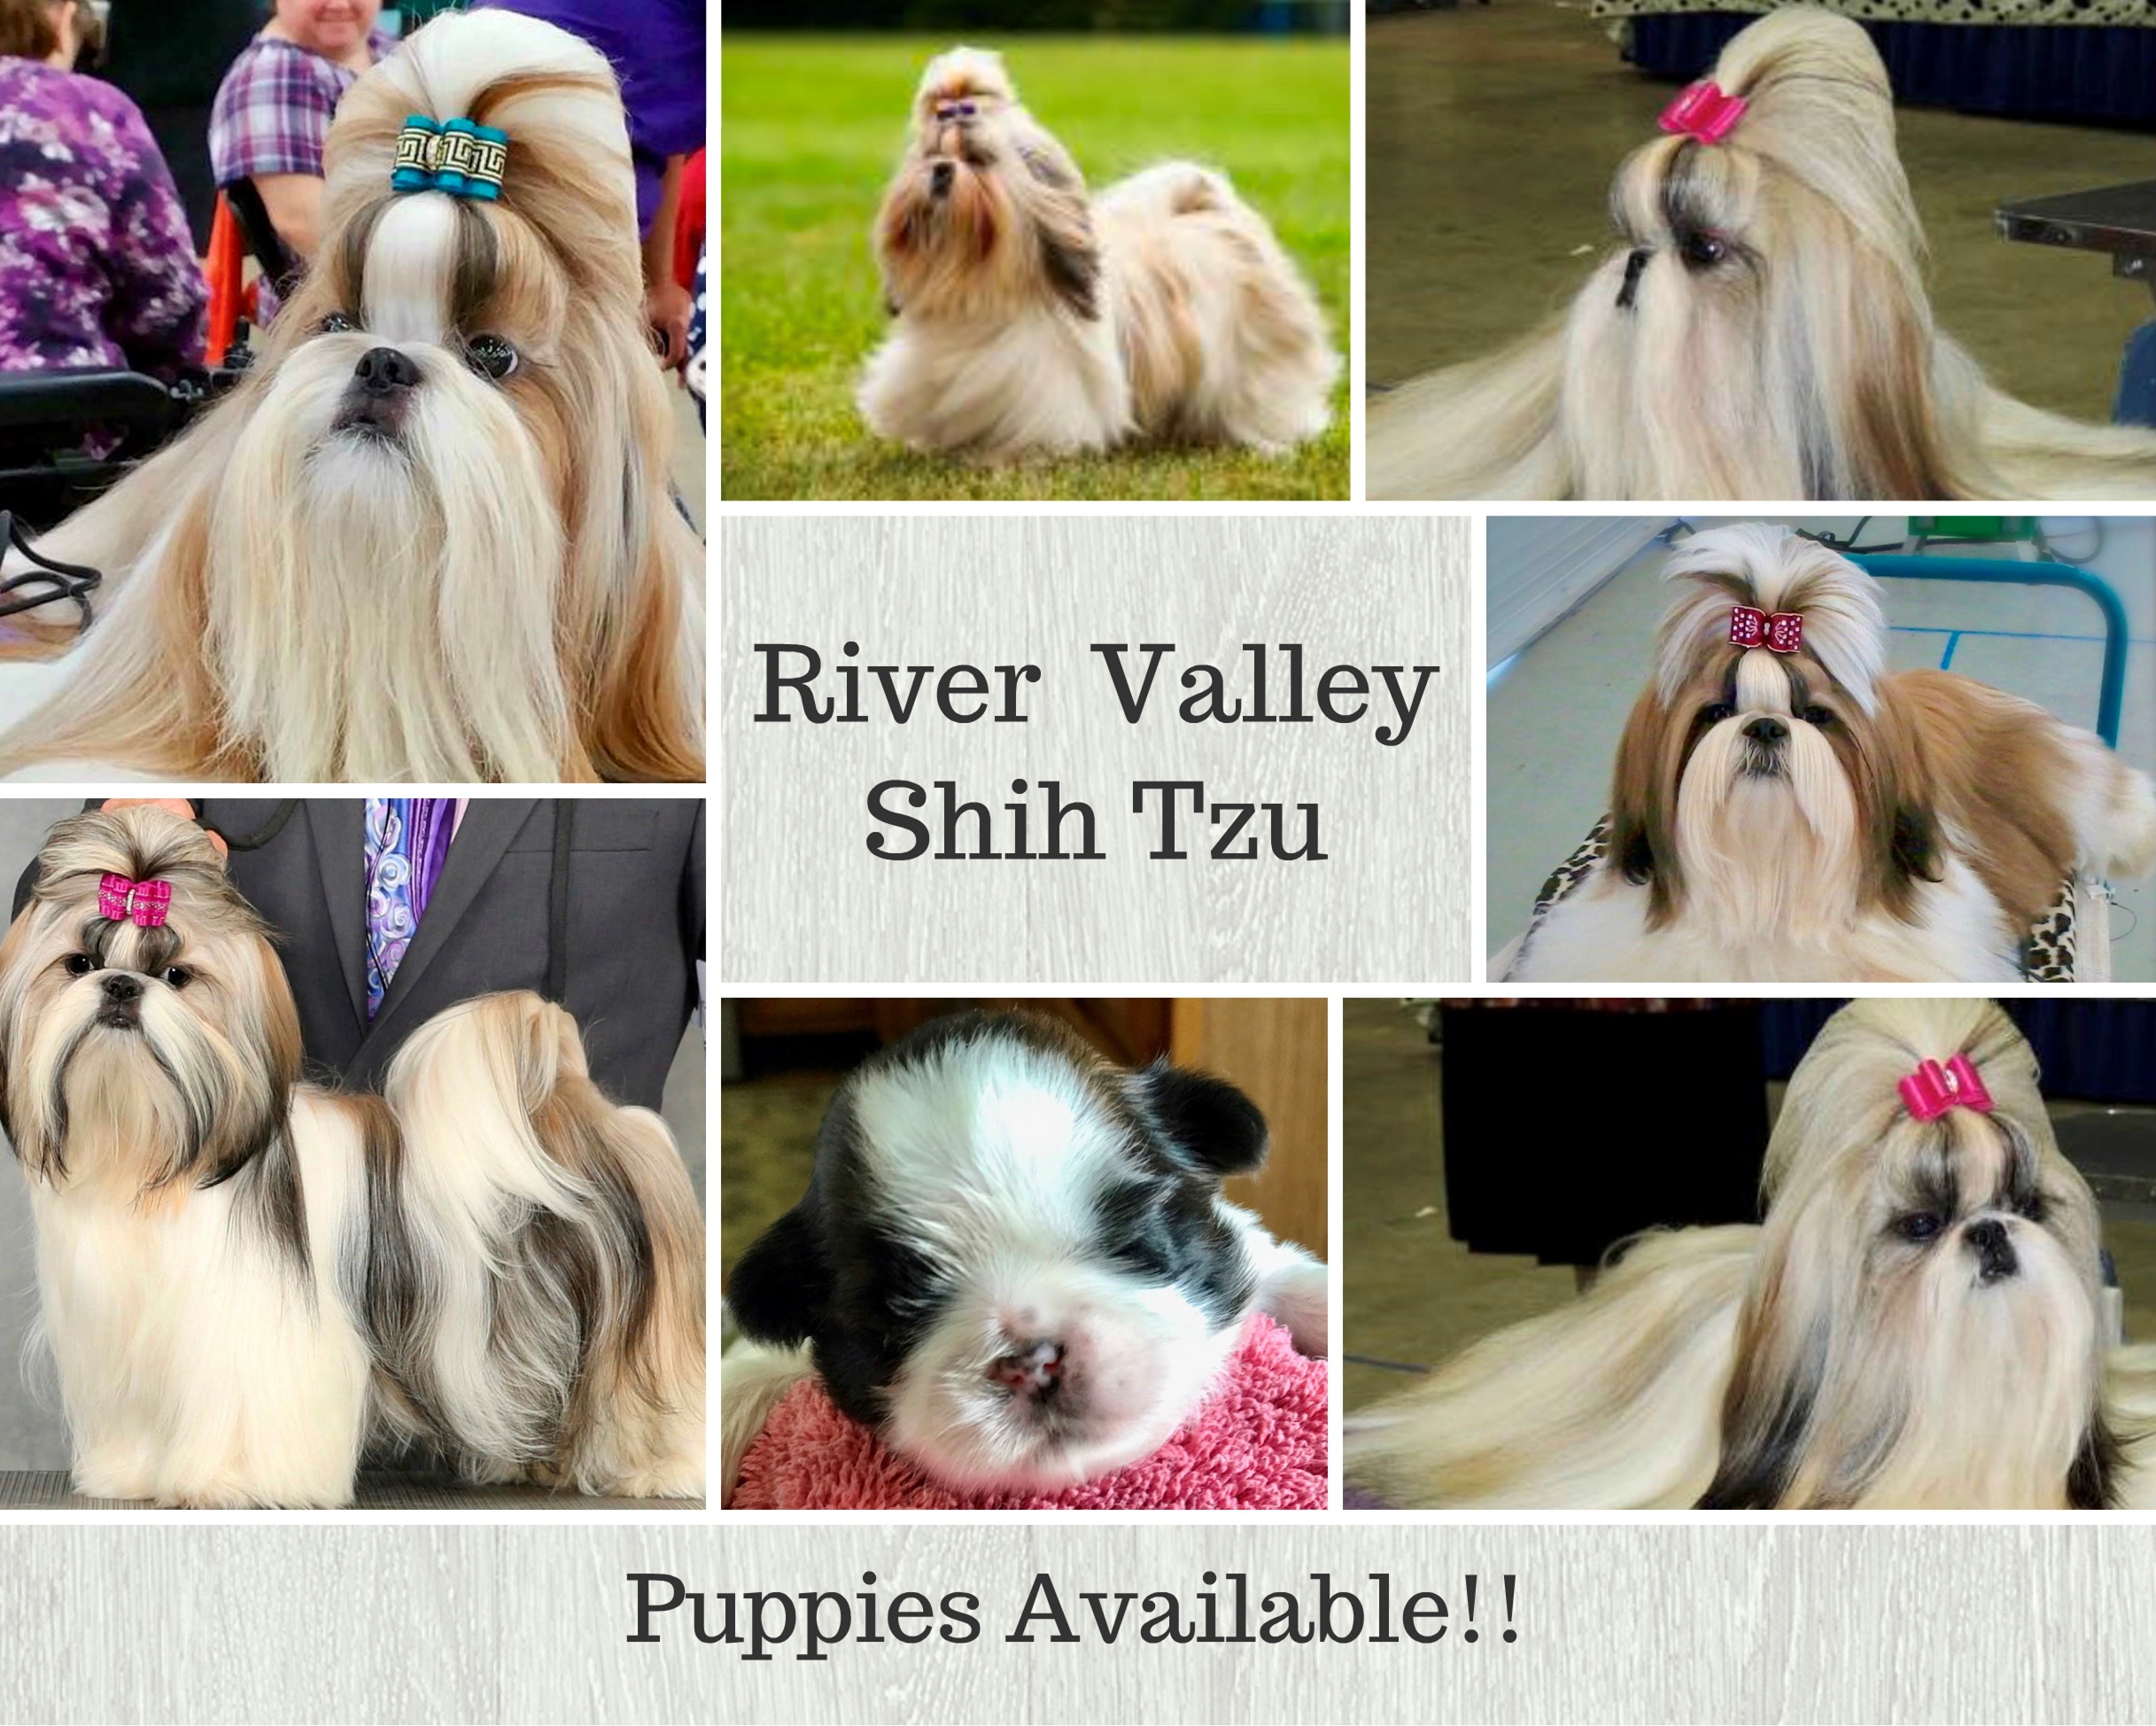 River Valley Shih-Tzu